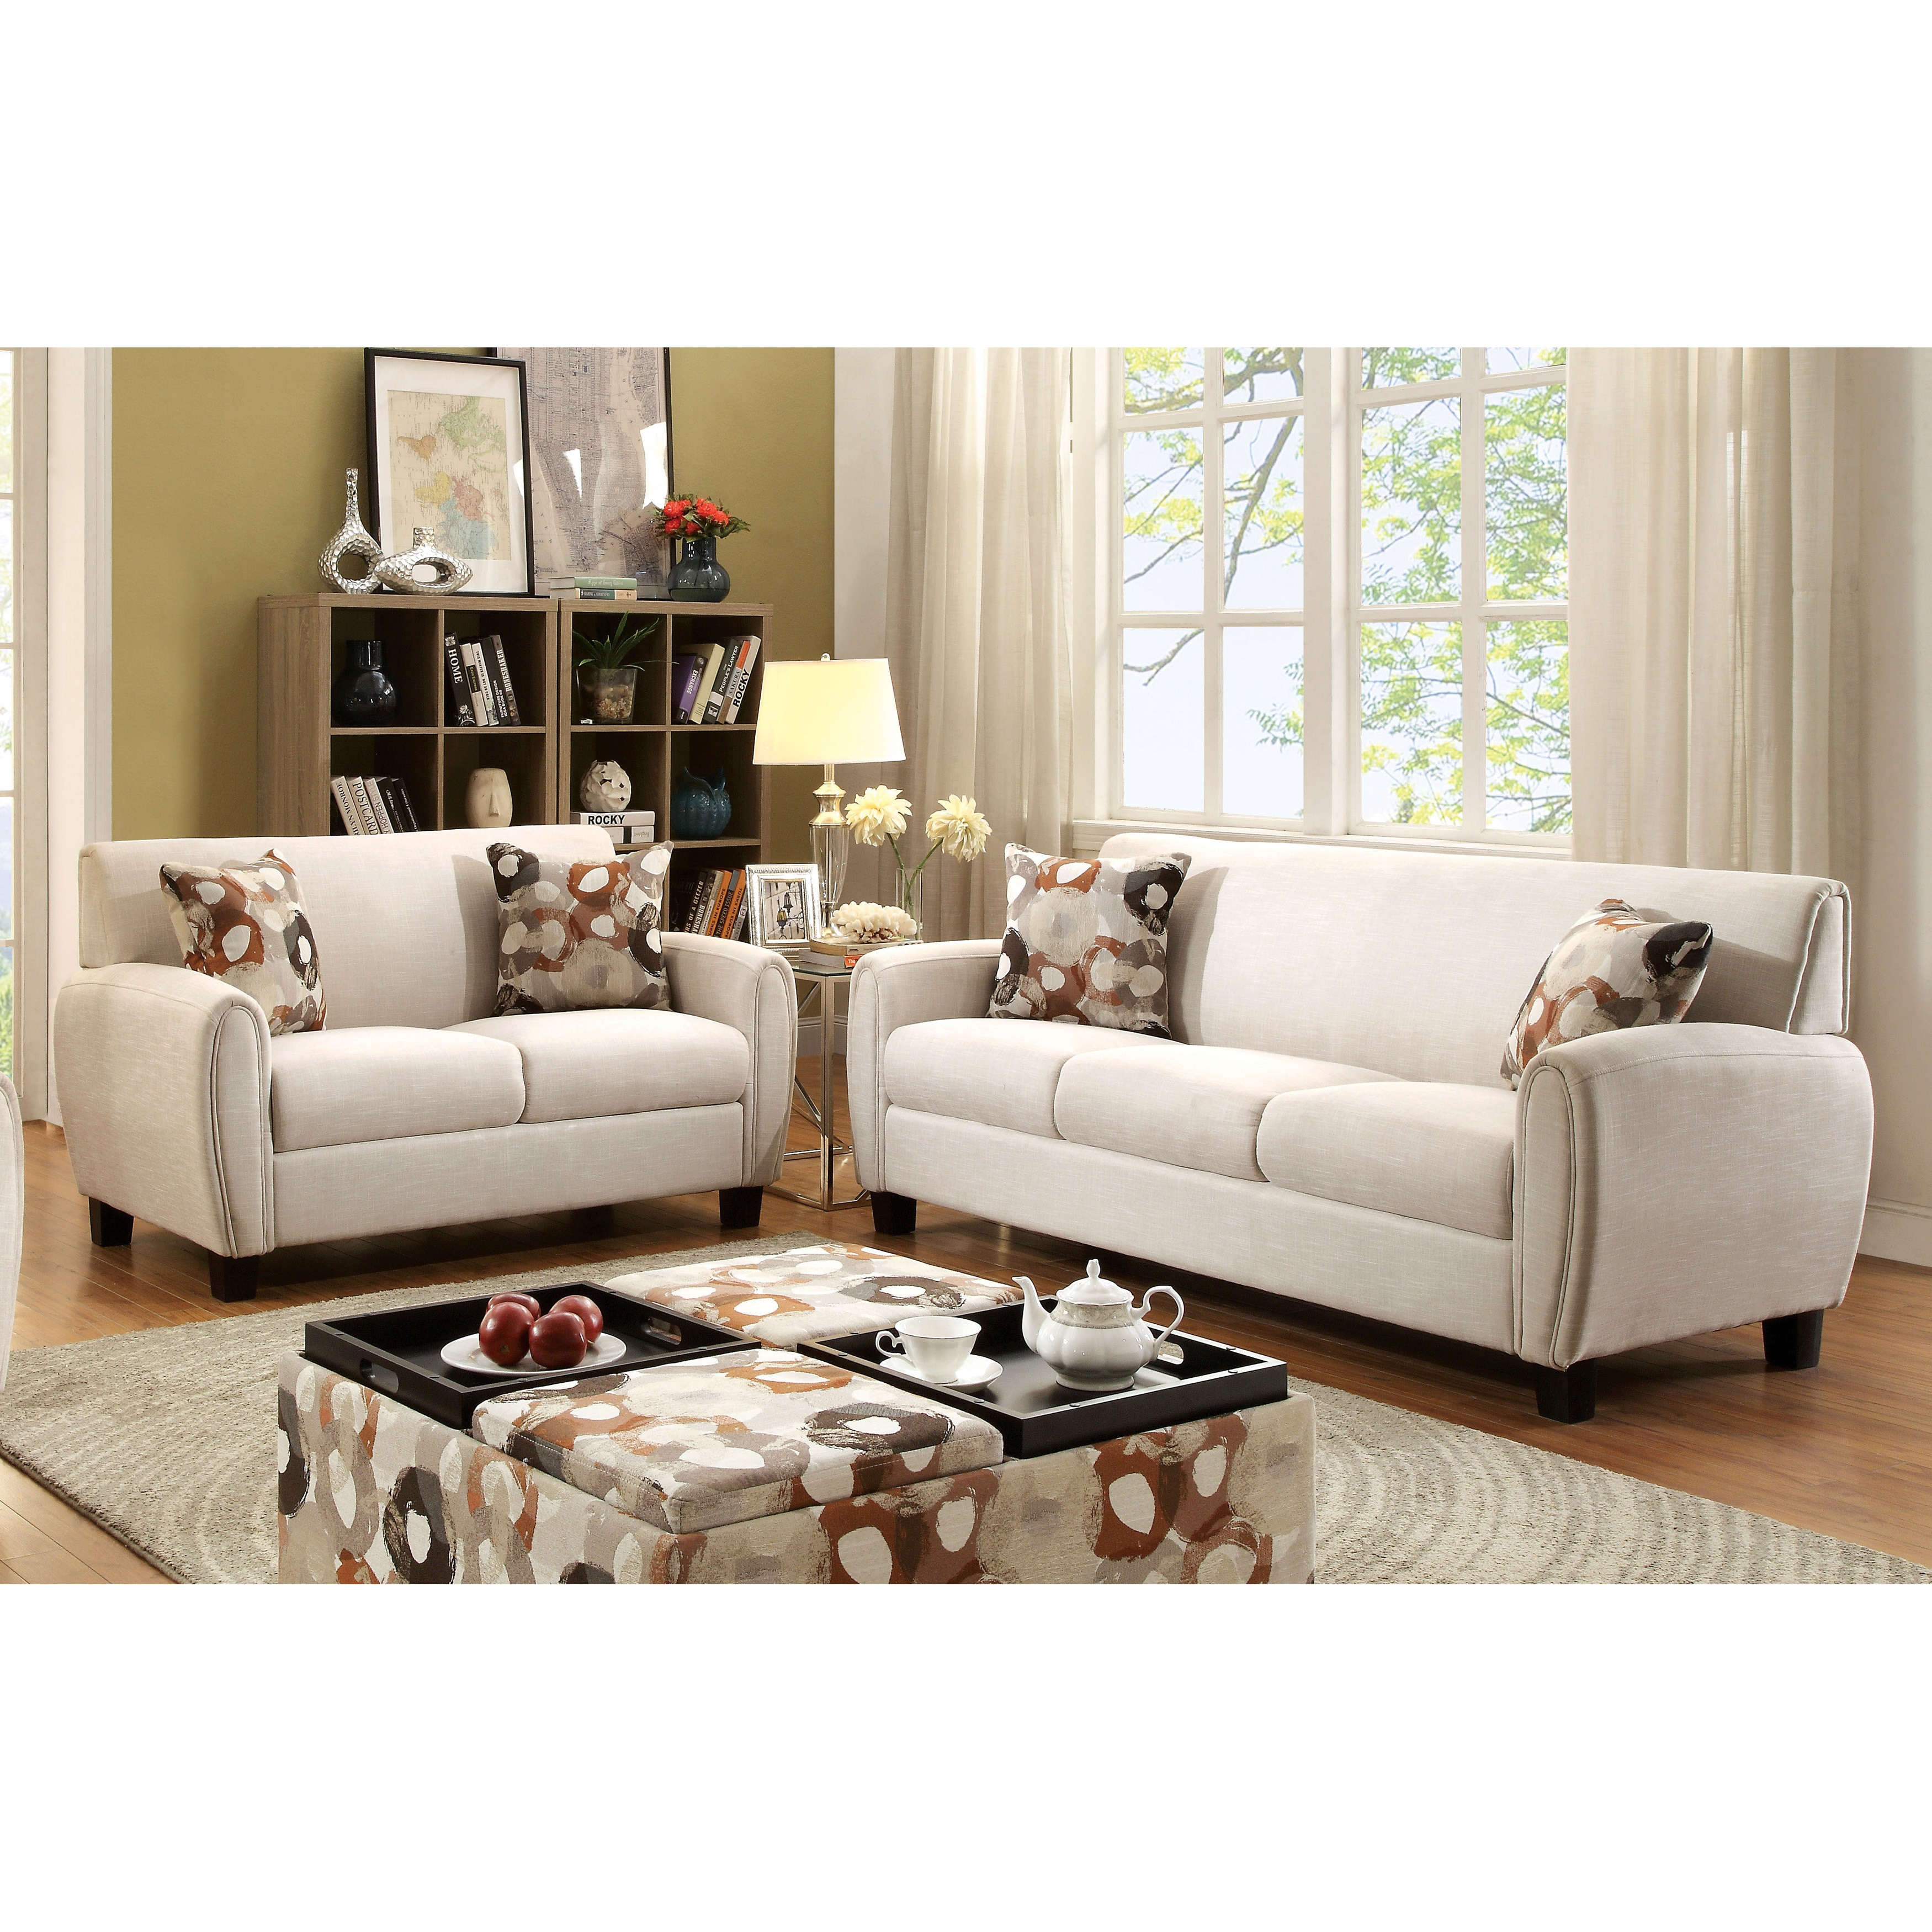 is way armchair home pin patterned century to vintage furniture loveseat best modern mid the buy